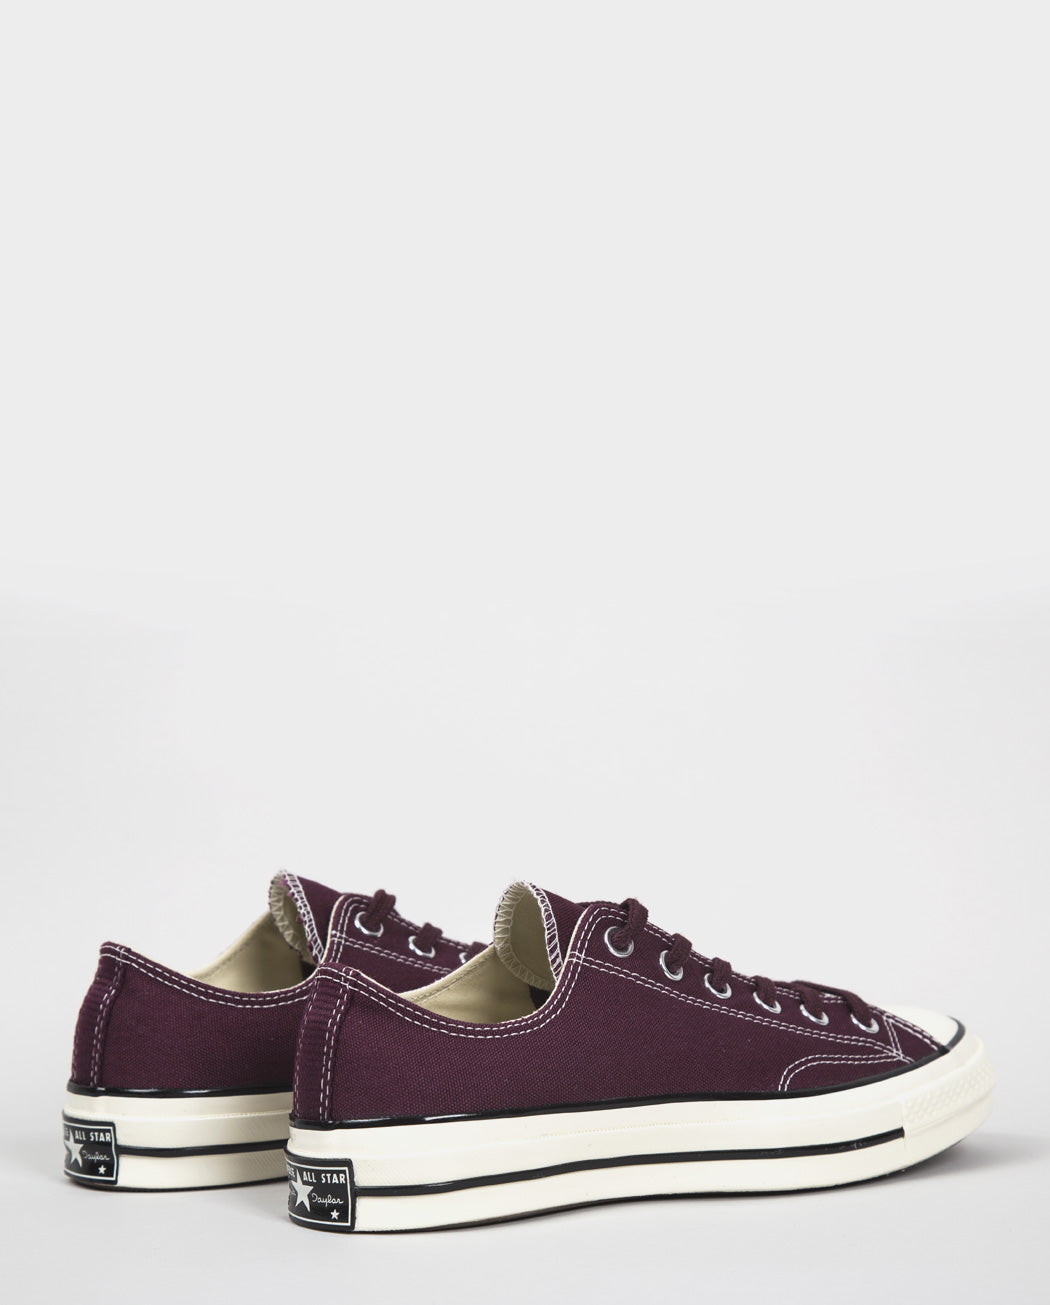 Converse 70's Chuck Taylor Low (Canvas) - Dark Red